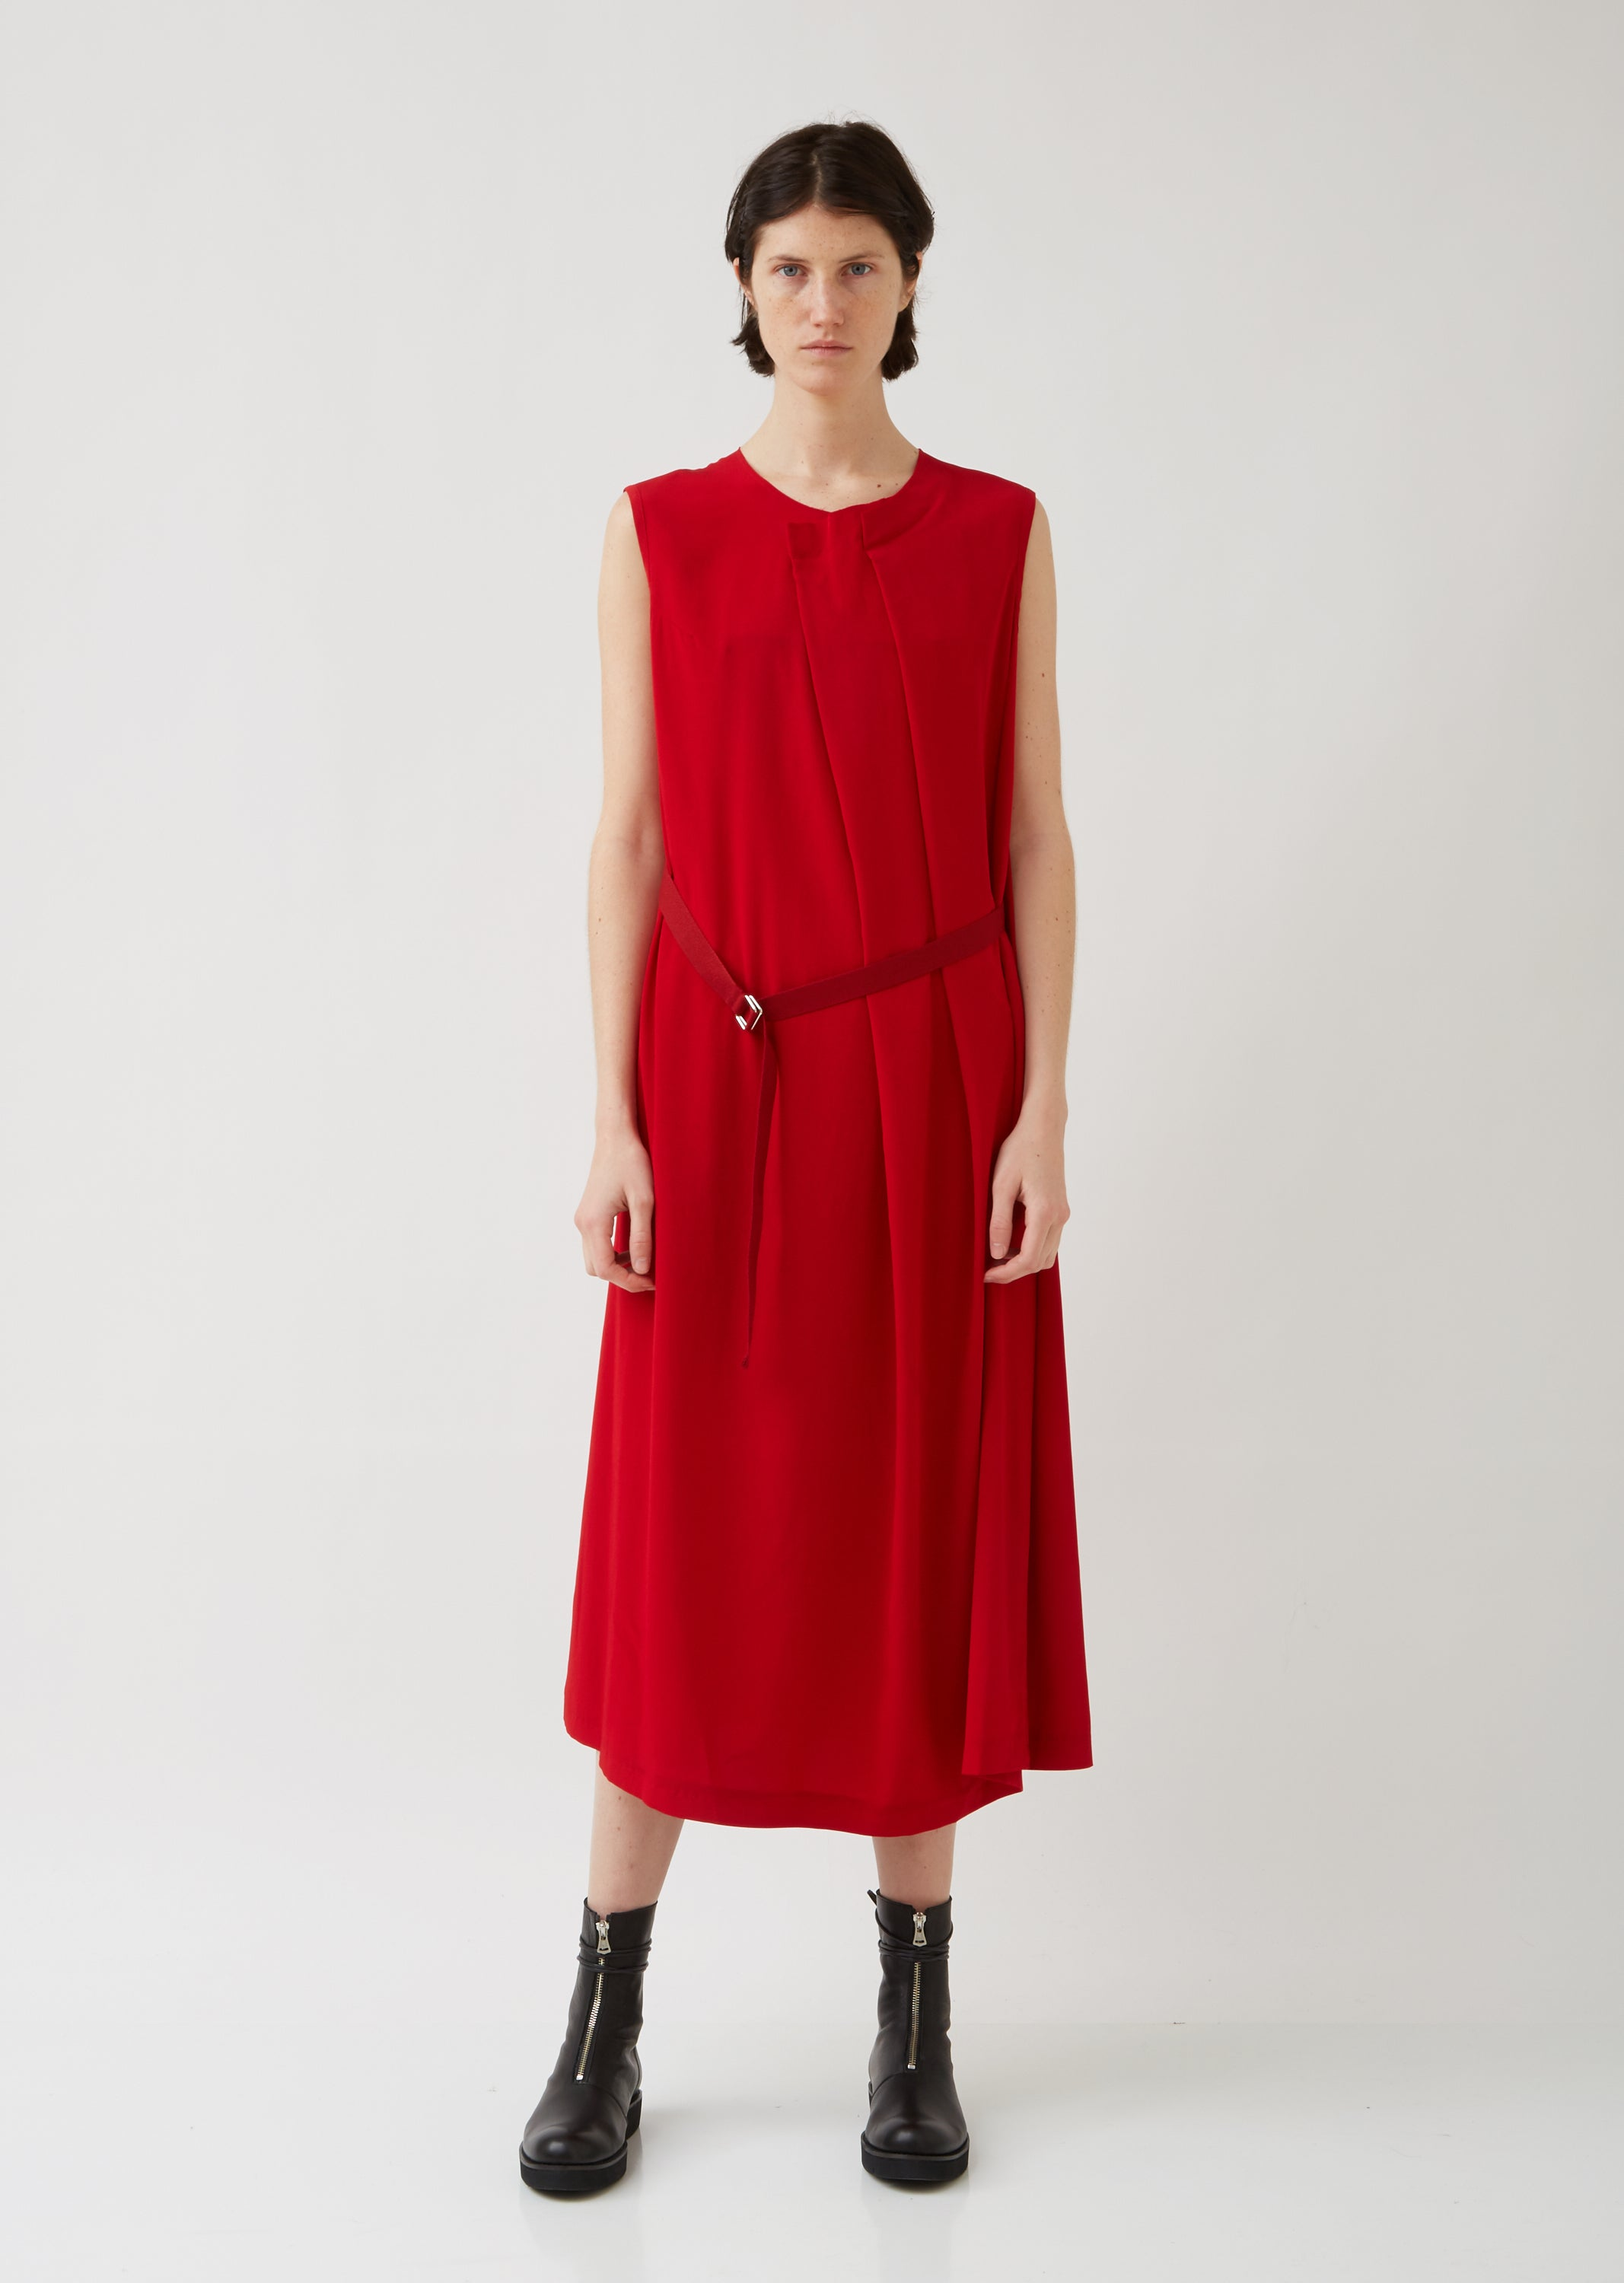 "Sade Dress by The Row"" /><label class="